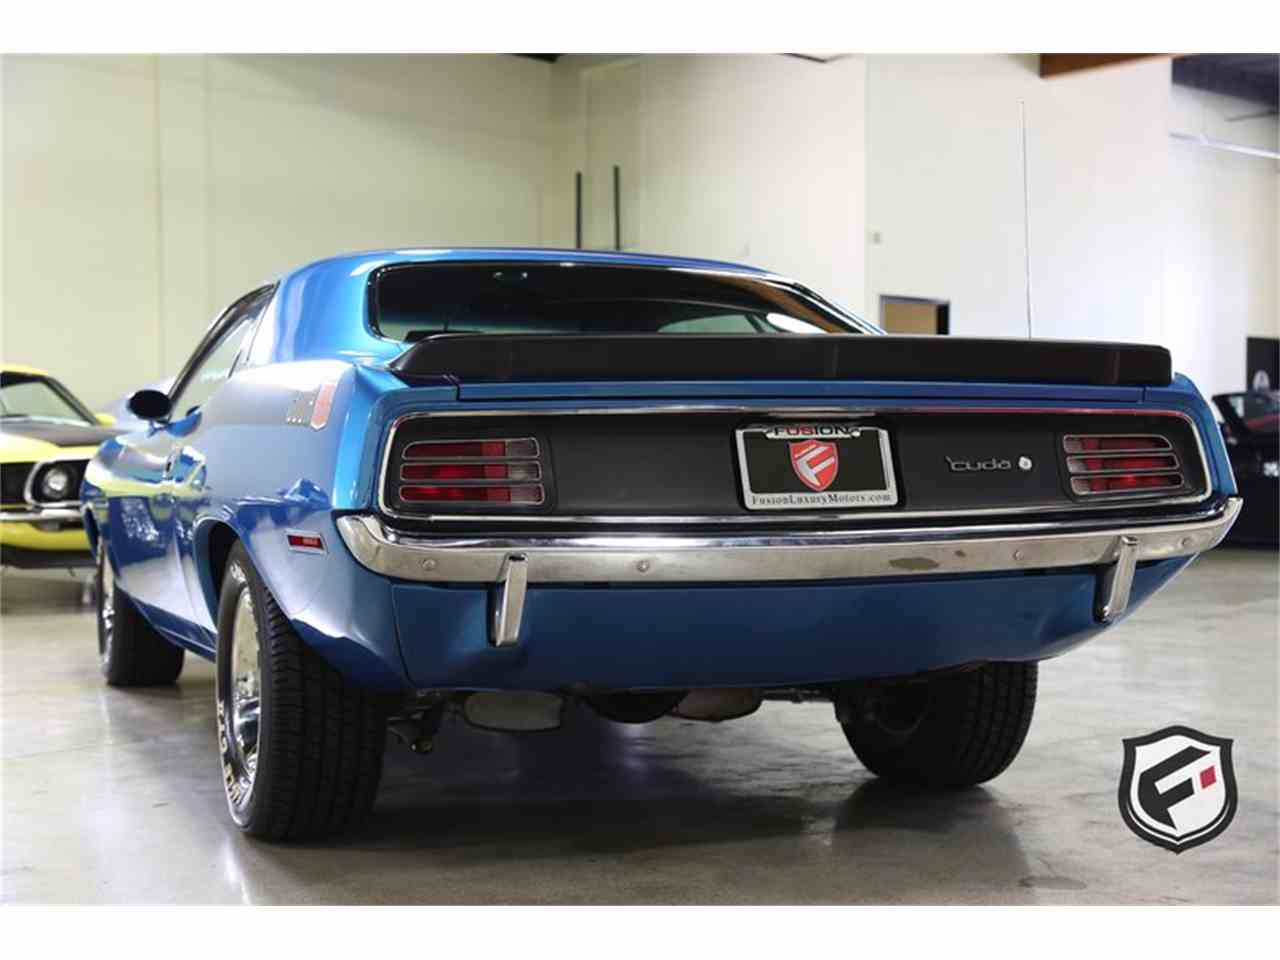 Large Picture of Classic 1970 Plymouth Cuda located in Chatsworth California Offered by Fusion Luxury Motors - MBSH